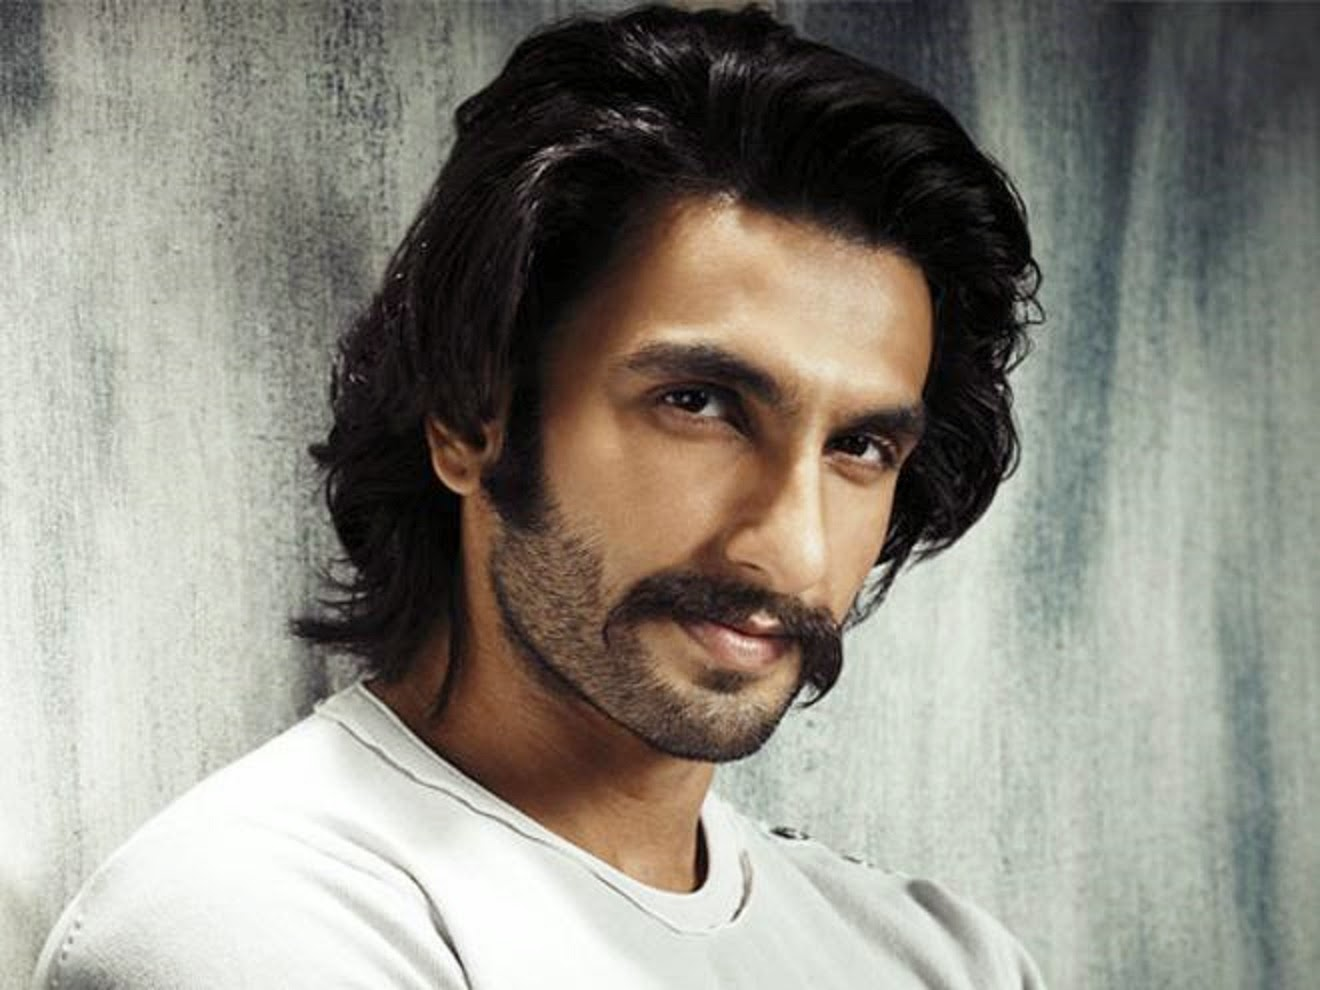 Ranveer Singh New Look hd Wallpaper Ranveer Singh hd Wallpapers